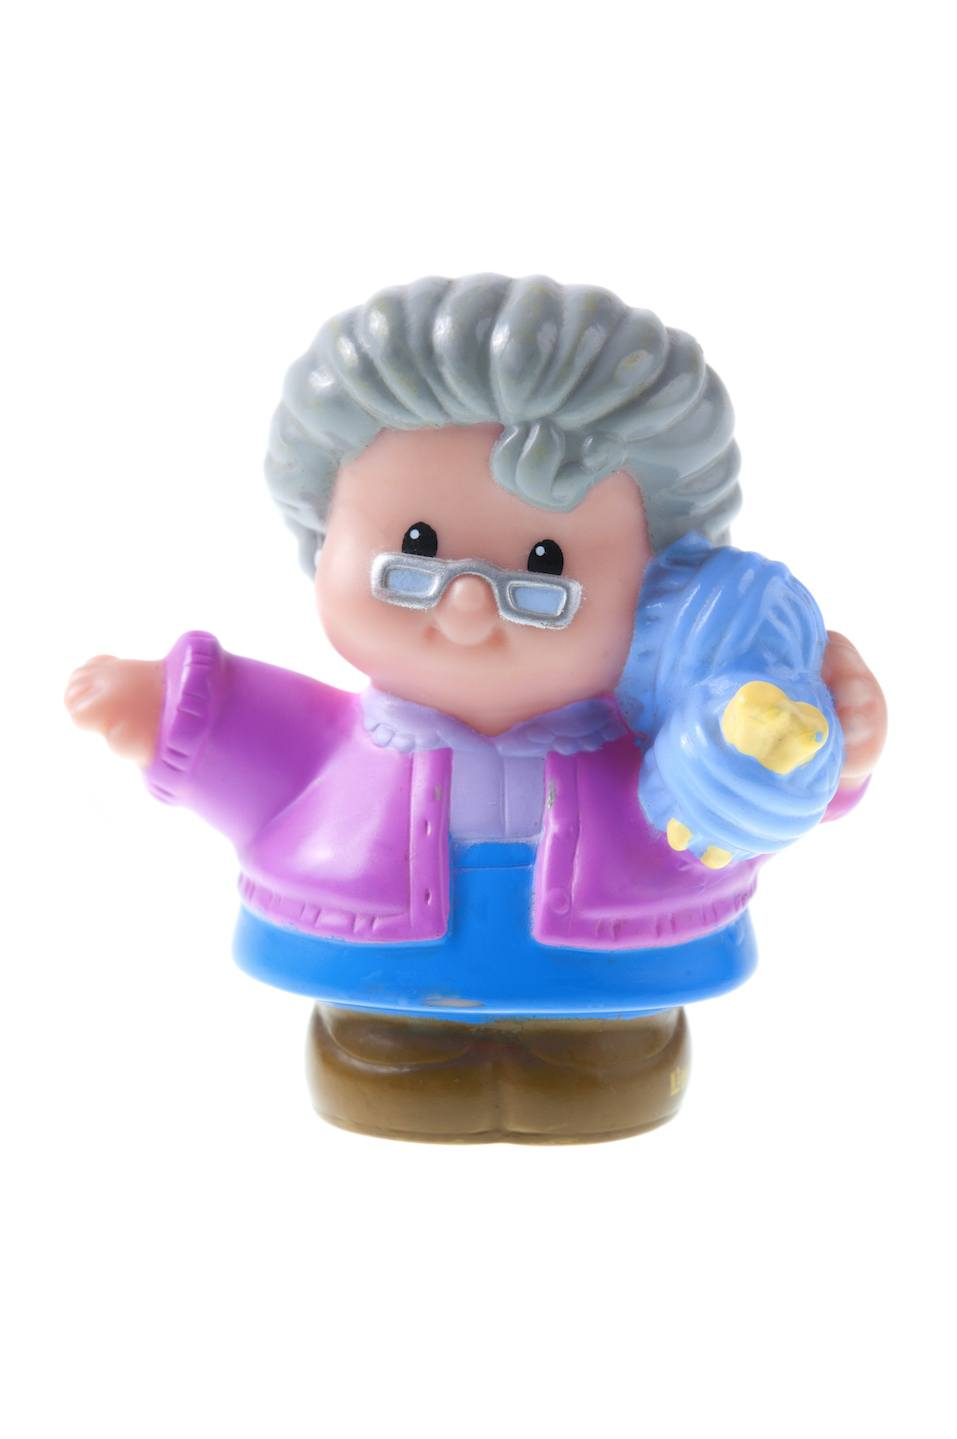 A studio shot of a Fisher Price Little People Grand Mother